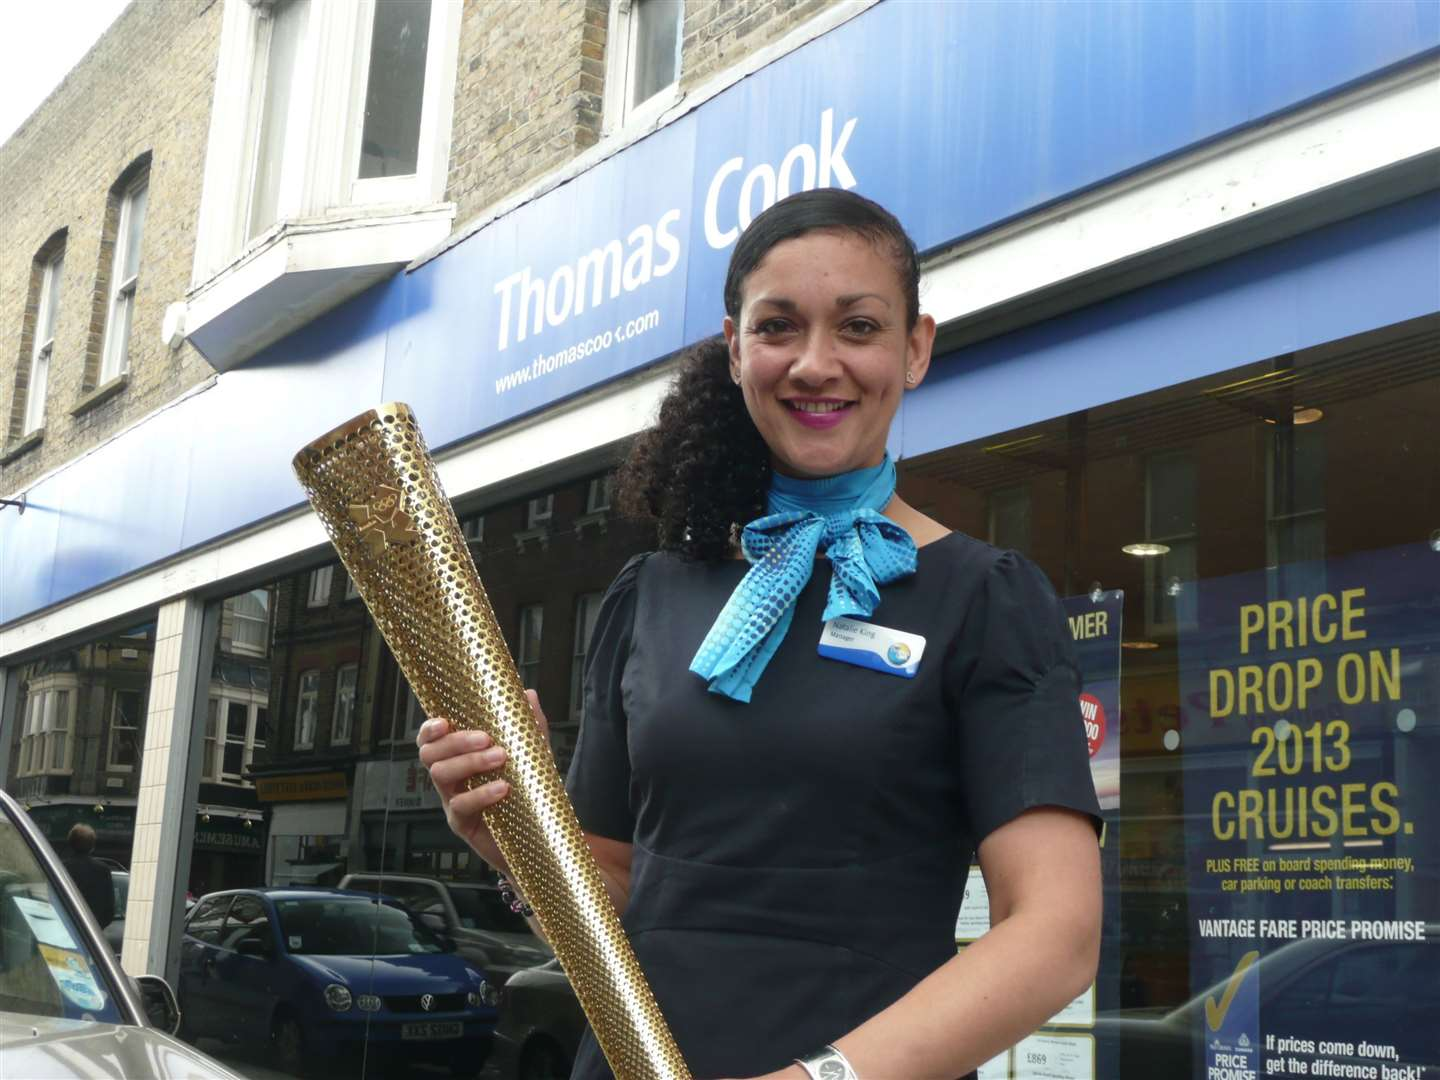 Natalie King, manager of Thomas Cook in Dover, with her Olympic torch